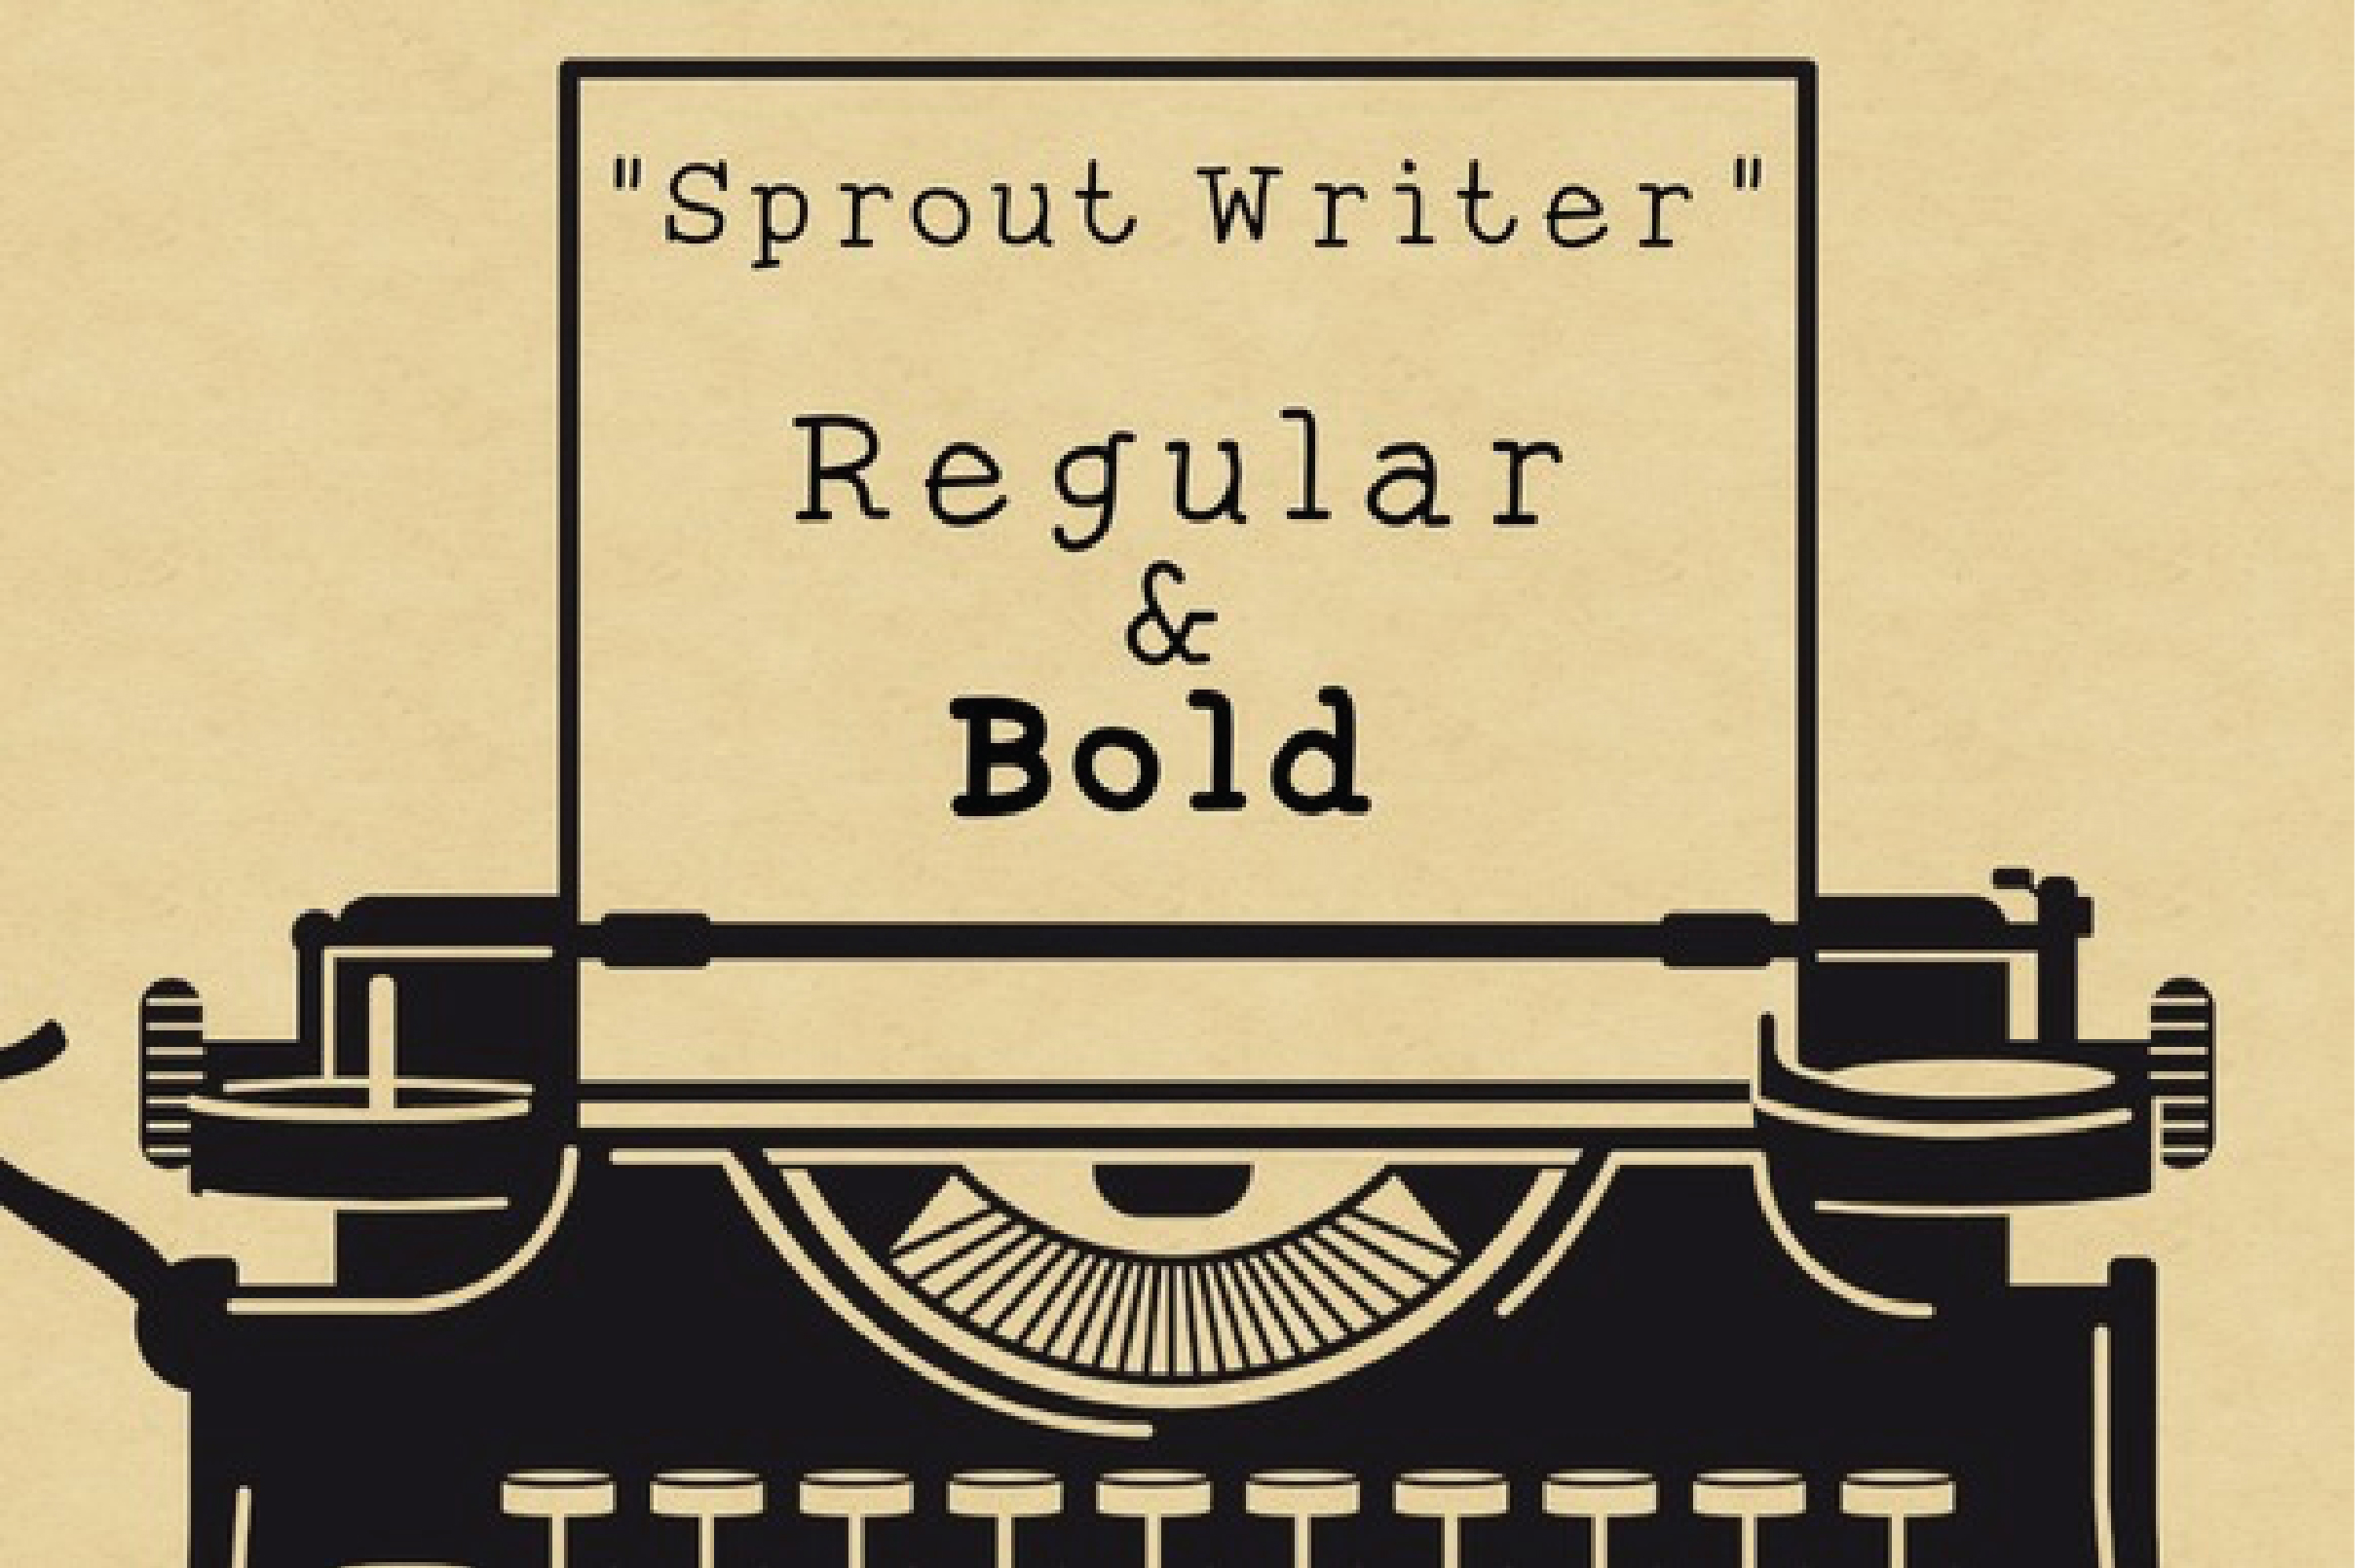 Sprout Writer Typeface